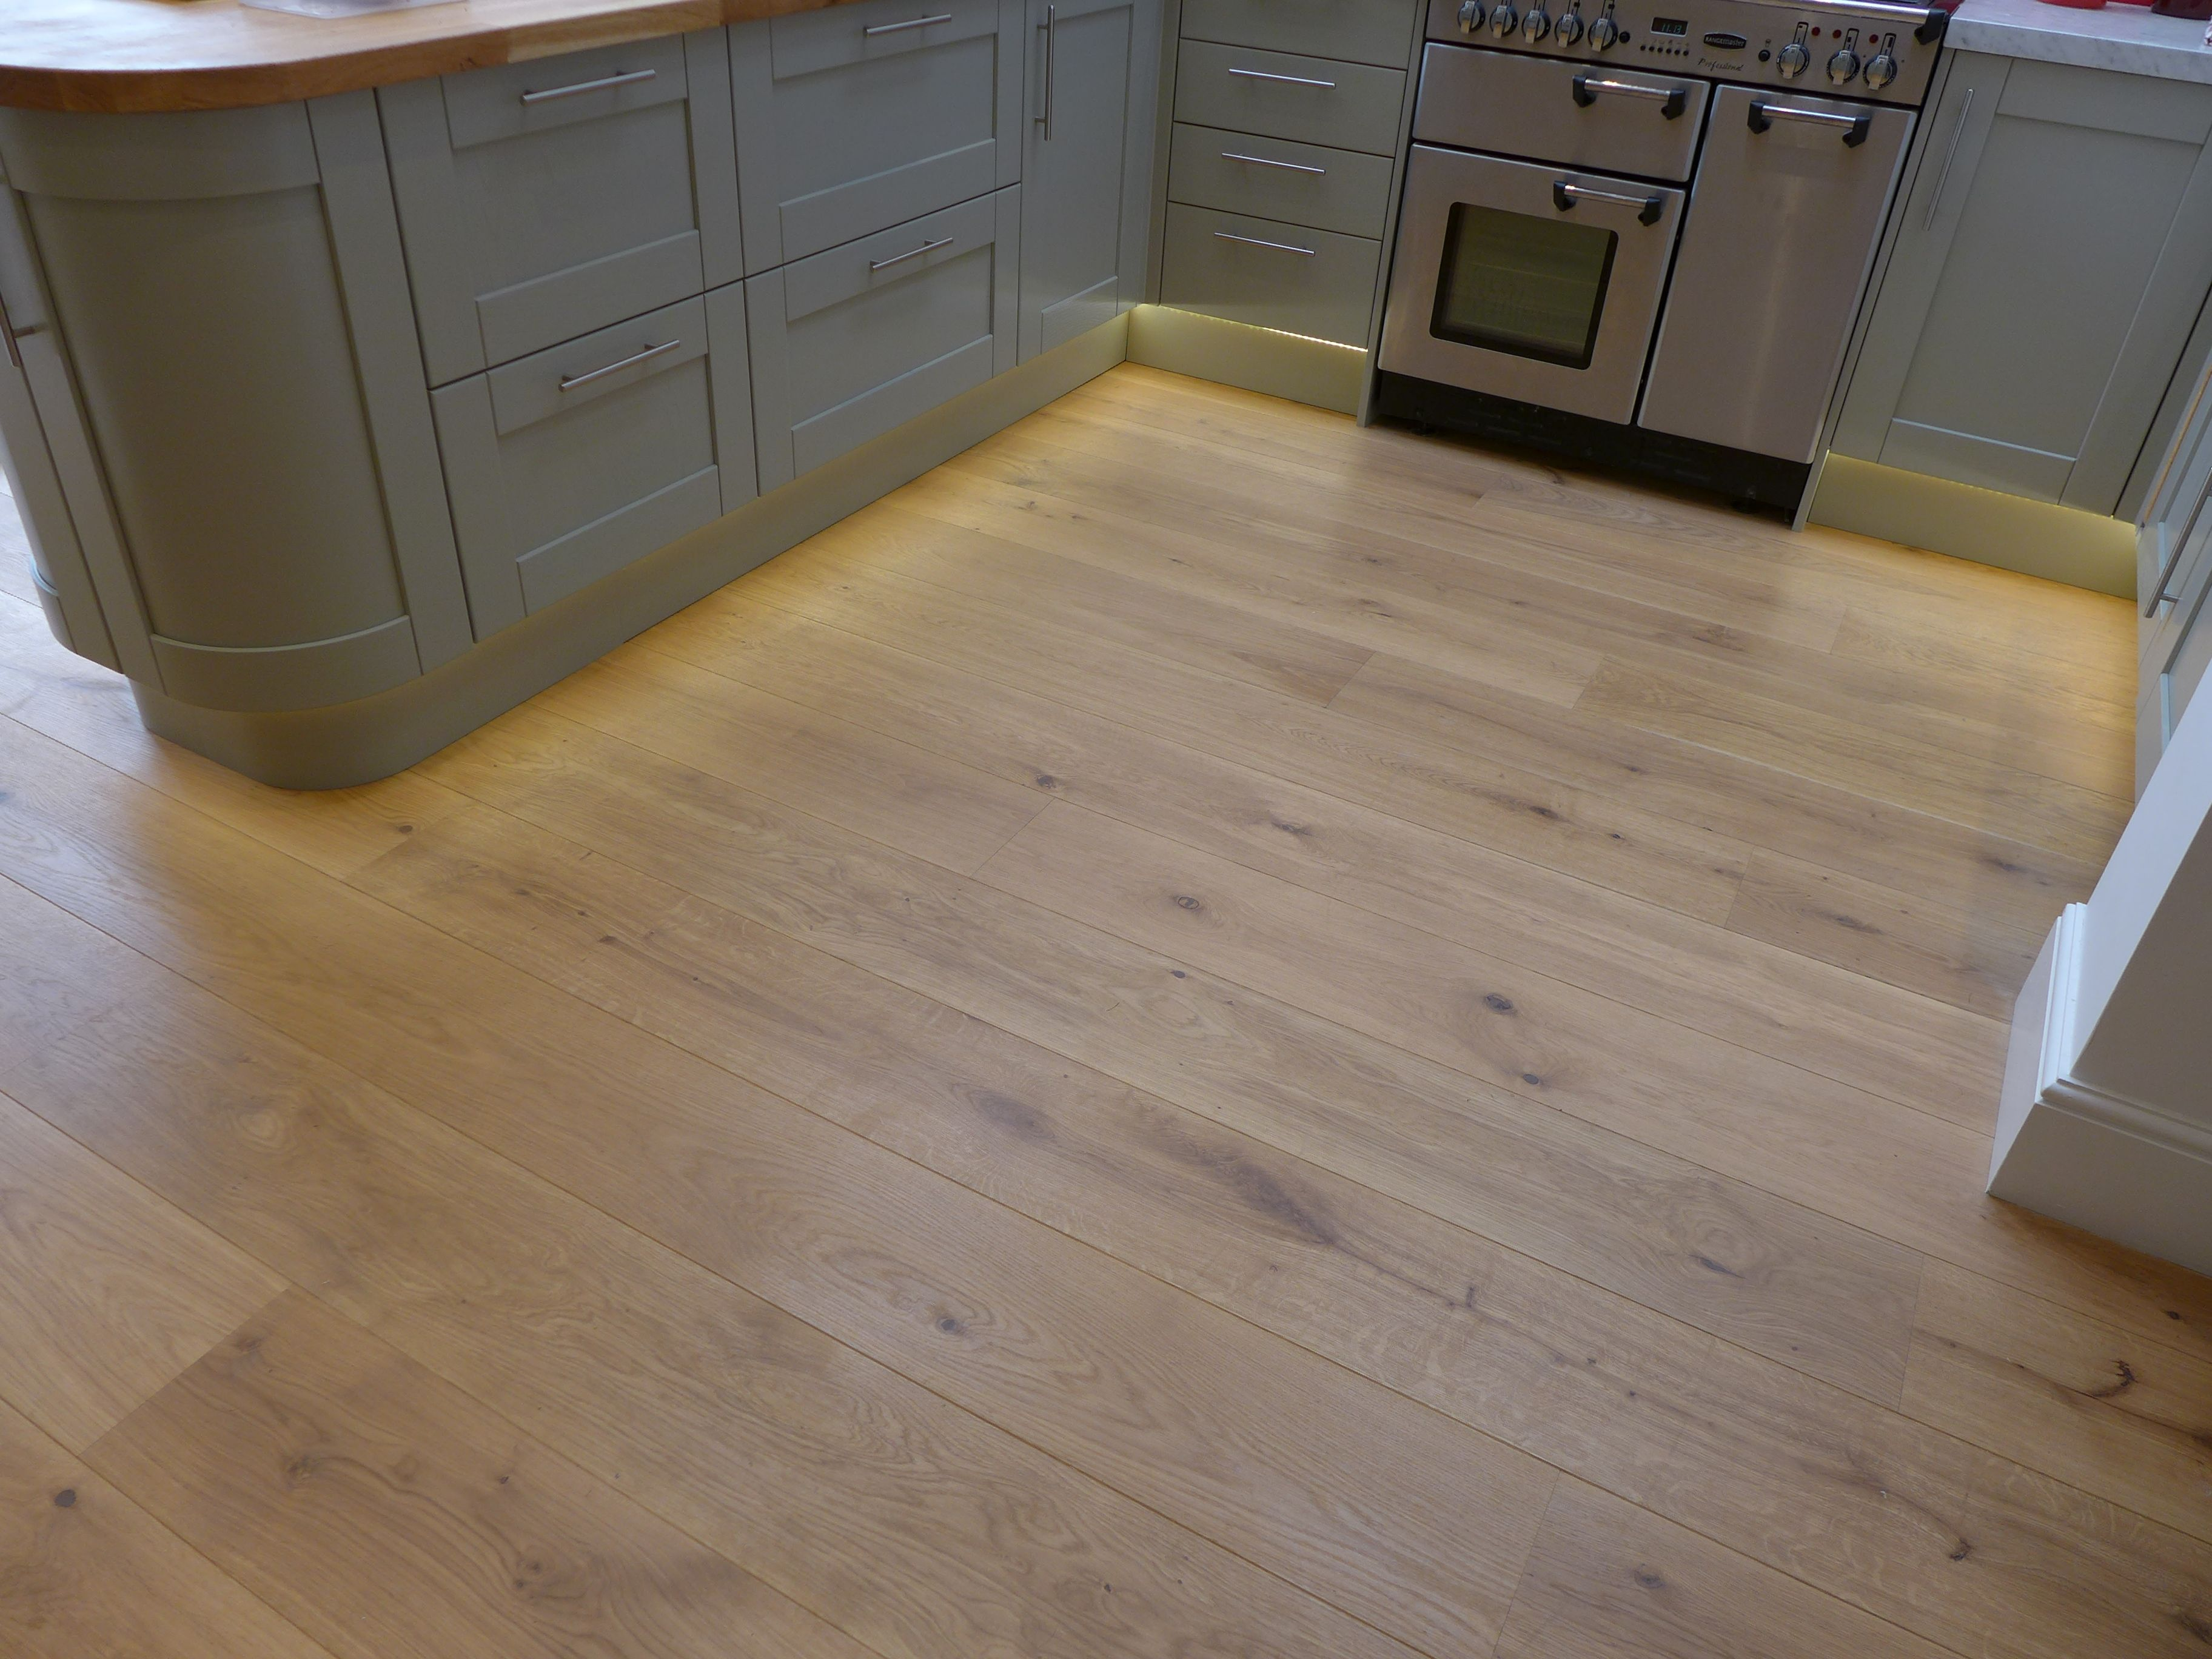 Led Strip Plinth Lighting Adds Warmth To This Oak Kitchen Floor